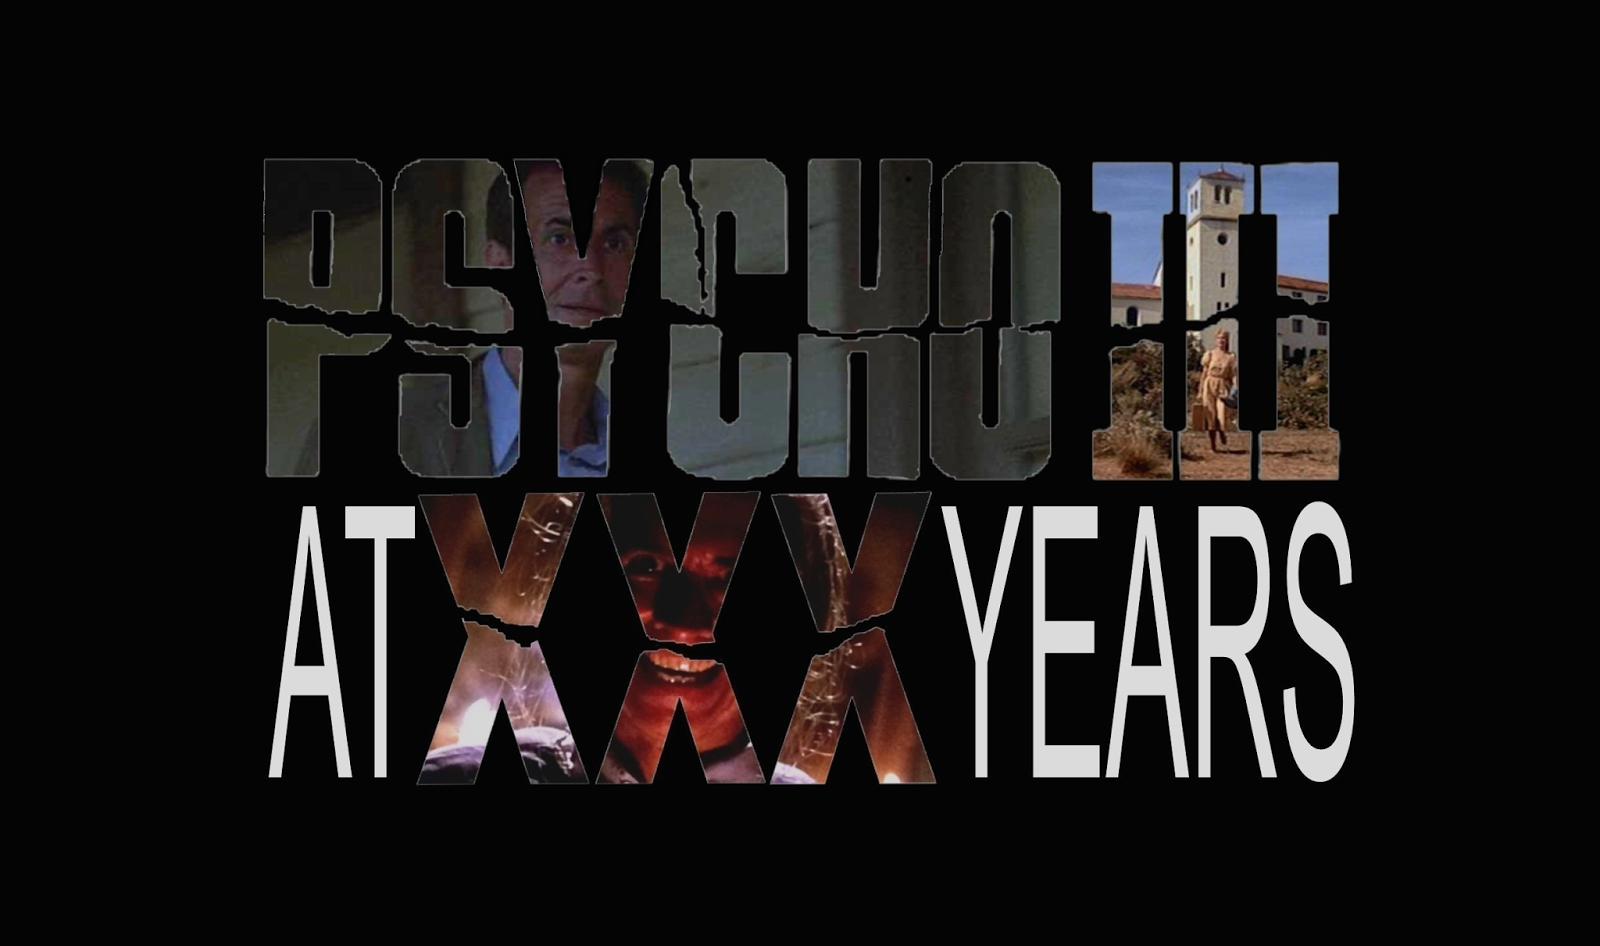 slivers of cinema psycho iii at xxx years the following essay reflects upon the themes characters and other distinguishing characteristics of this second sequel to the hitchcock classic